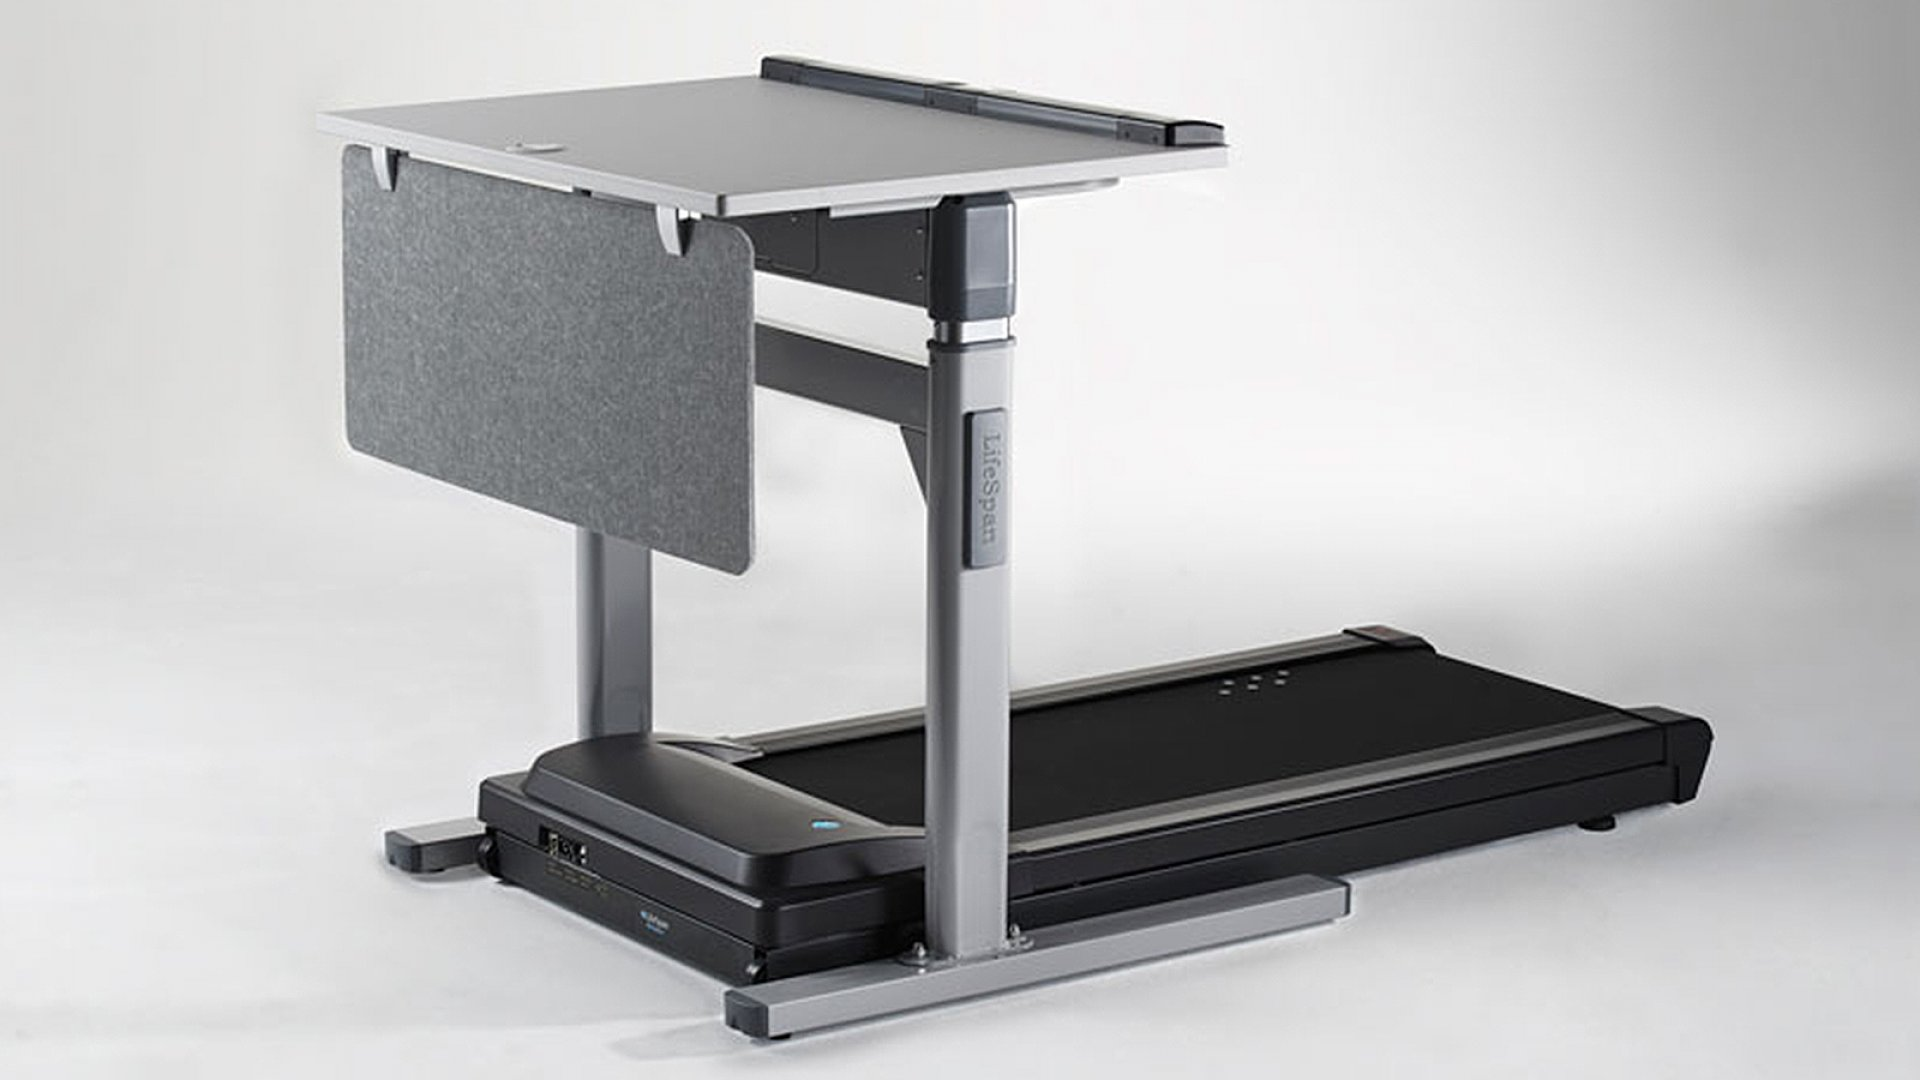 The LifeSpan TR1200-DT7 Treadmill Desk helps you get active all day.